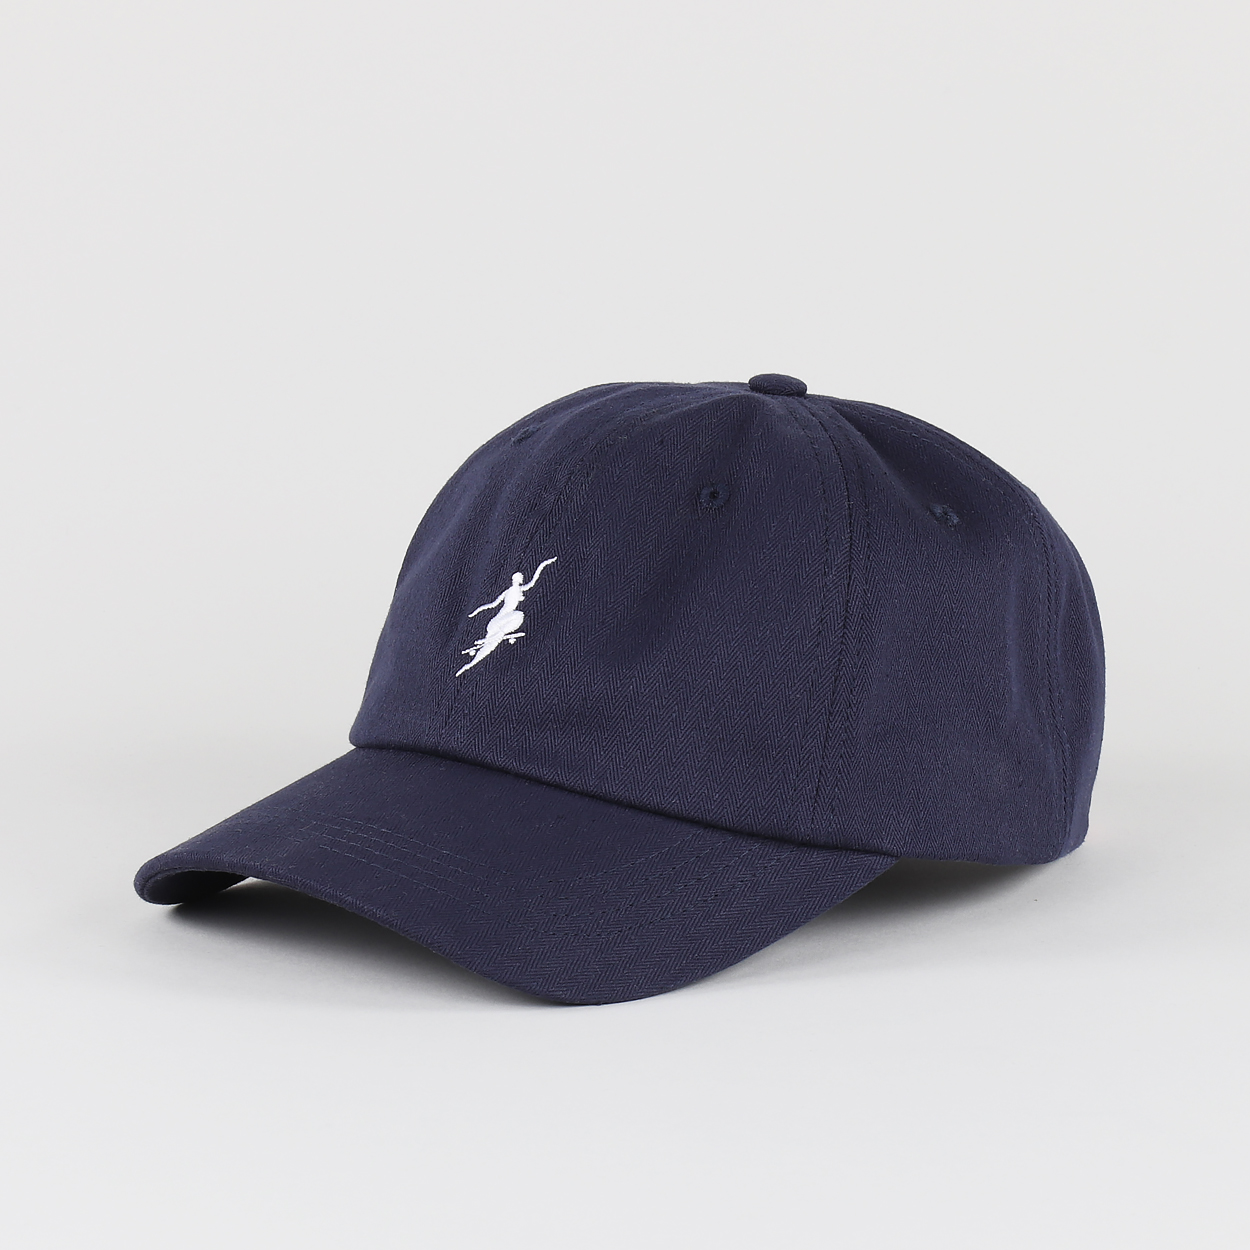 405bae97 Polar Skate Co. Embroidered No Comply Curved Peak Cap Navy Blue £27.75